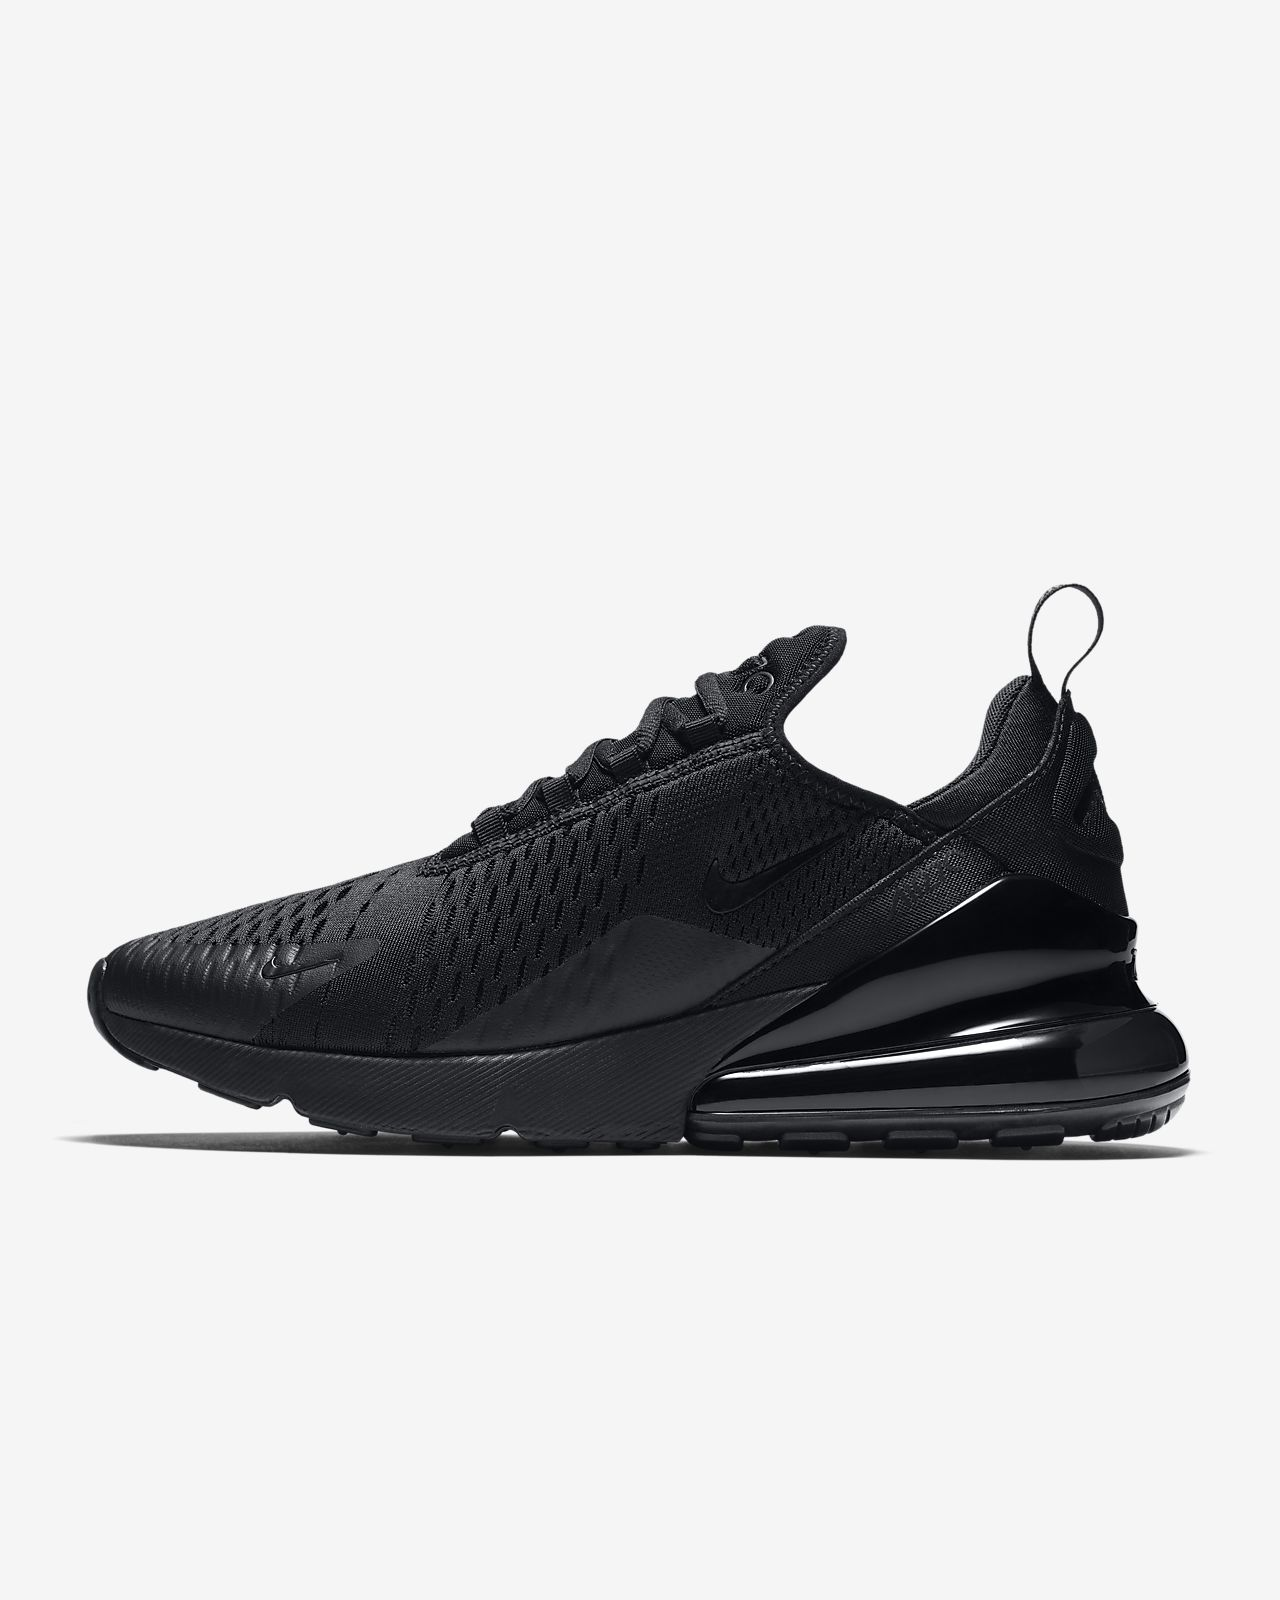 b1f43a7e1f989 Nike Air Max 270 Men's Shoe